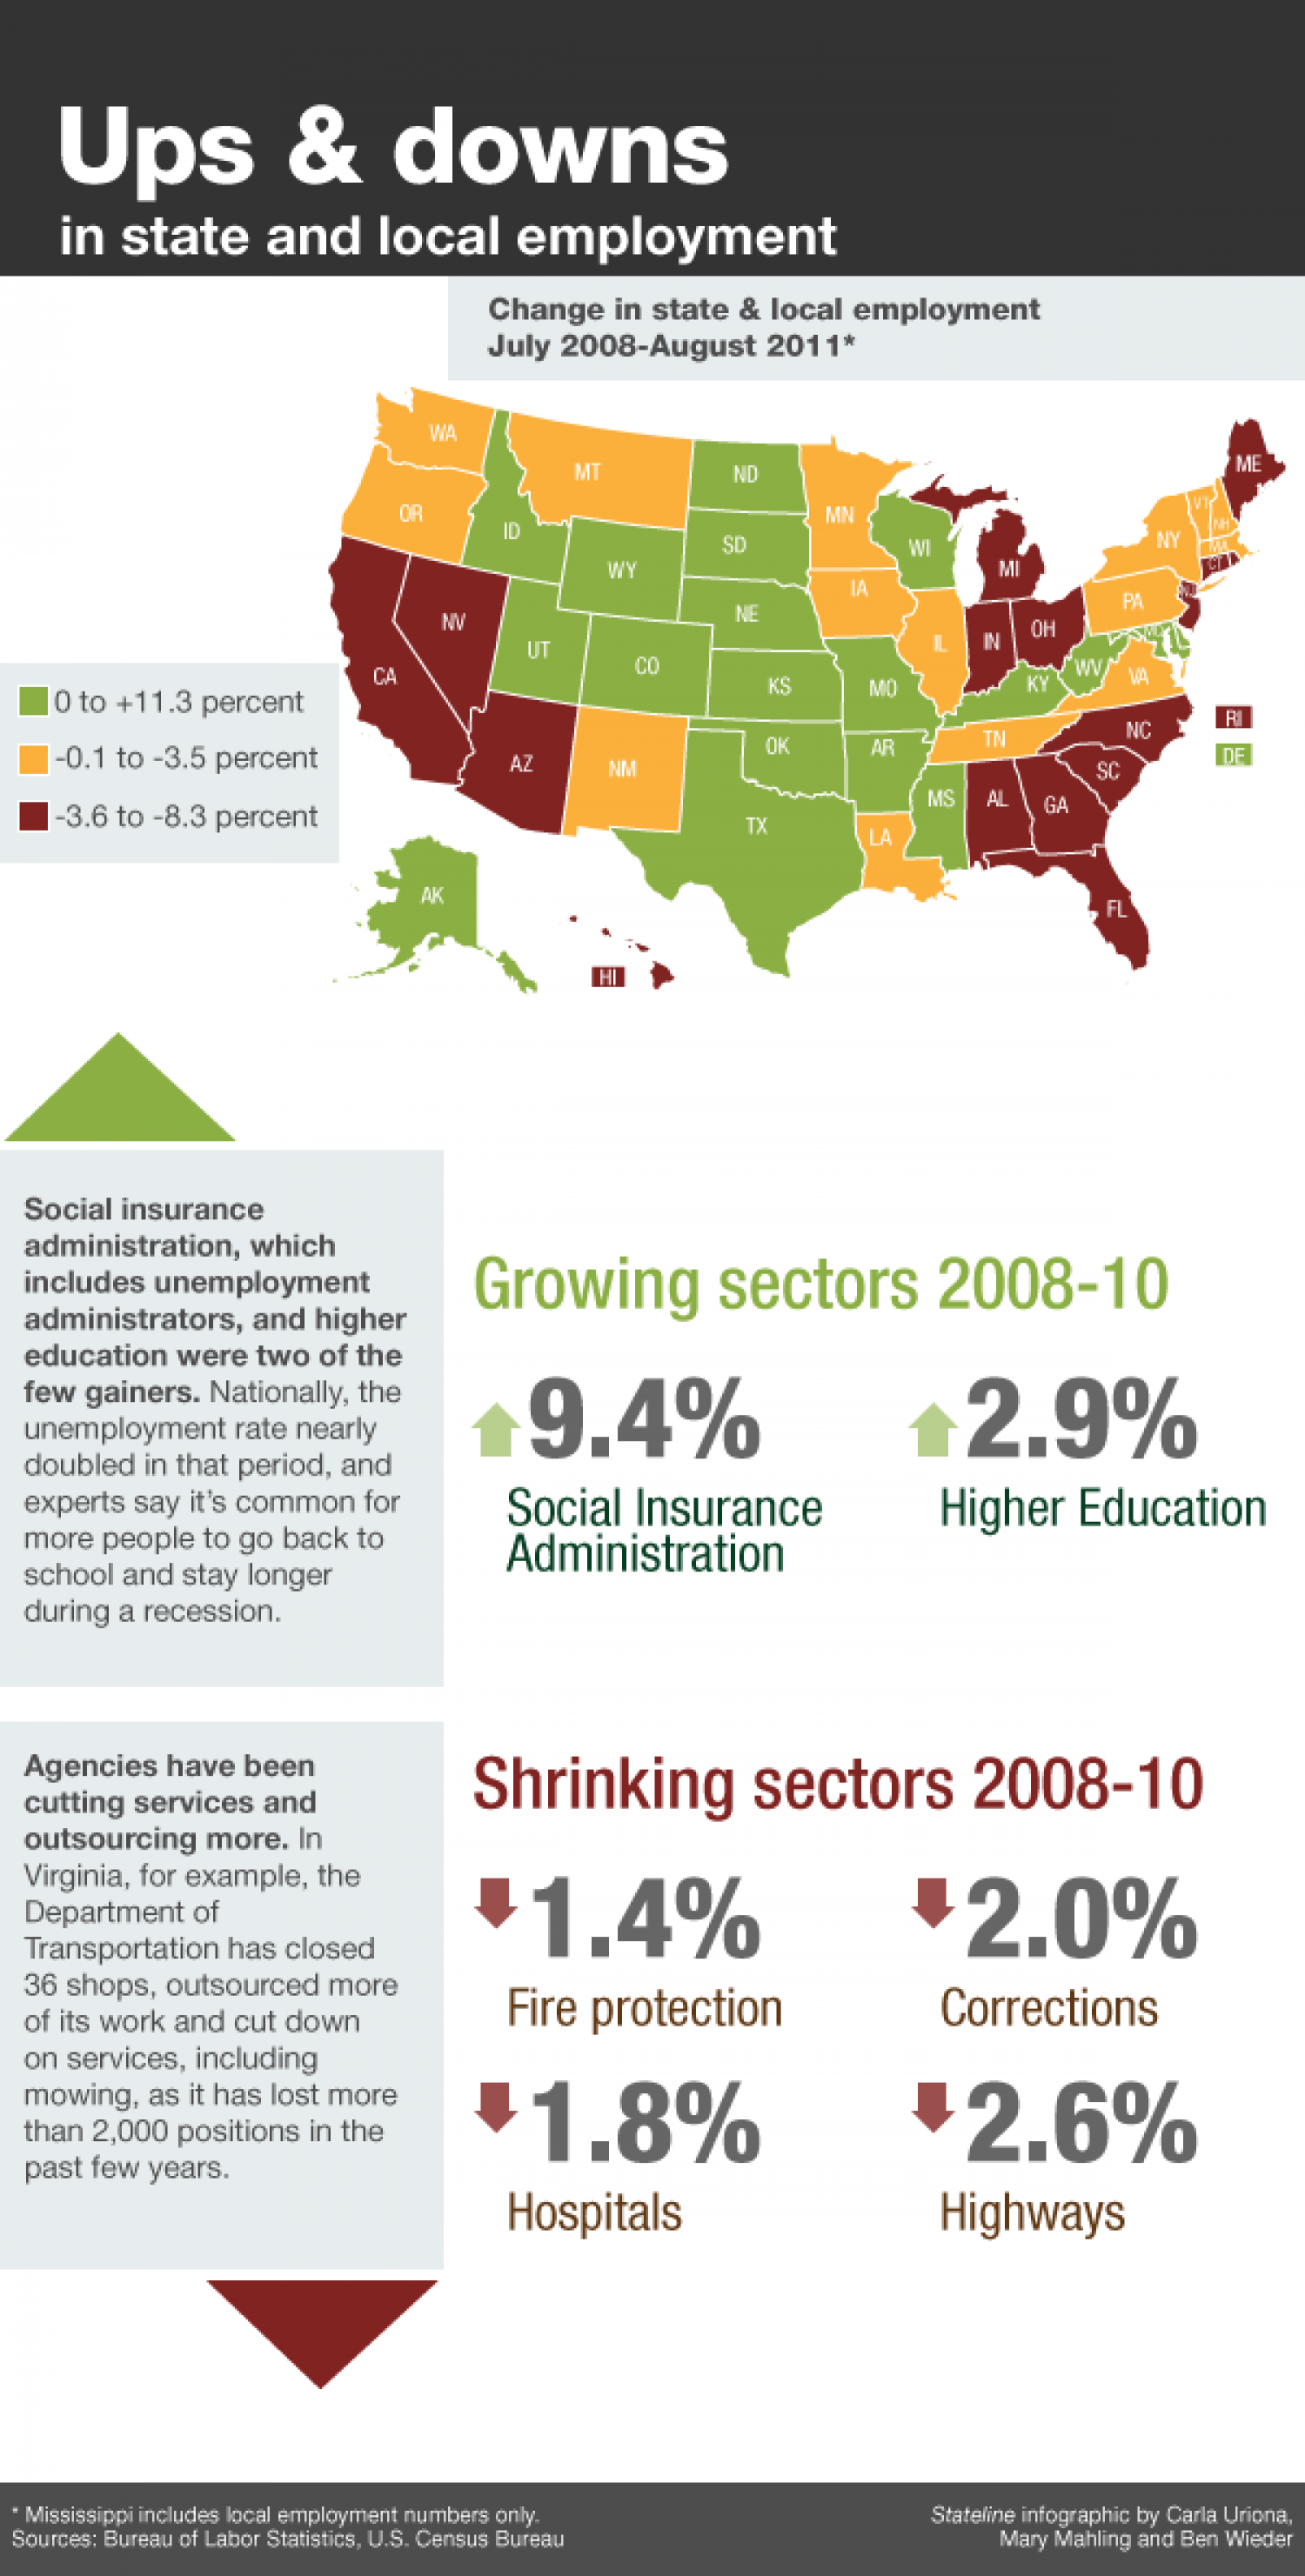 Ups & down in state and local employment Infographic